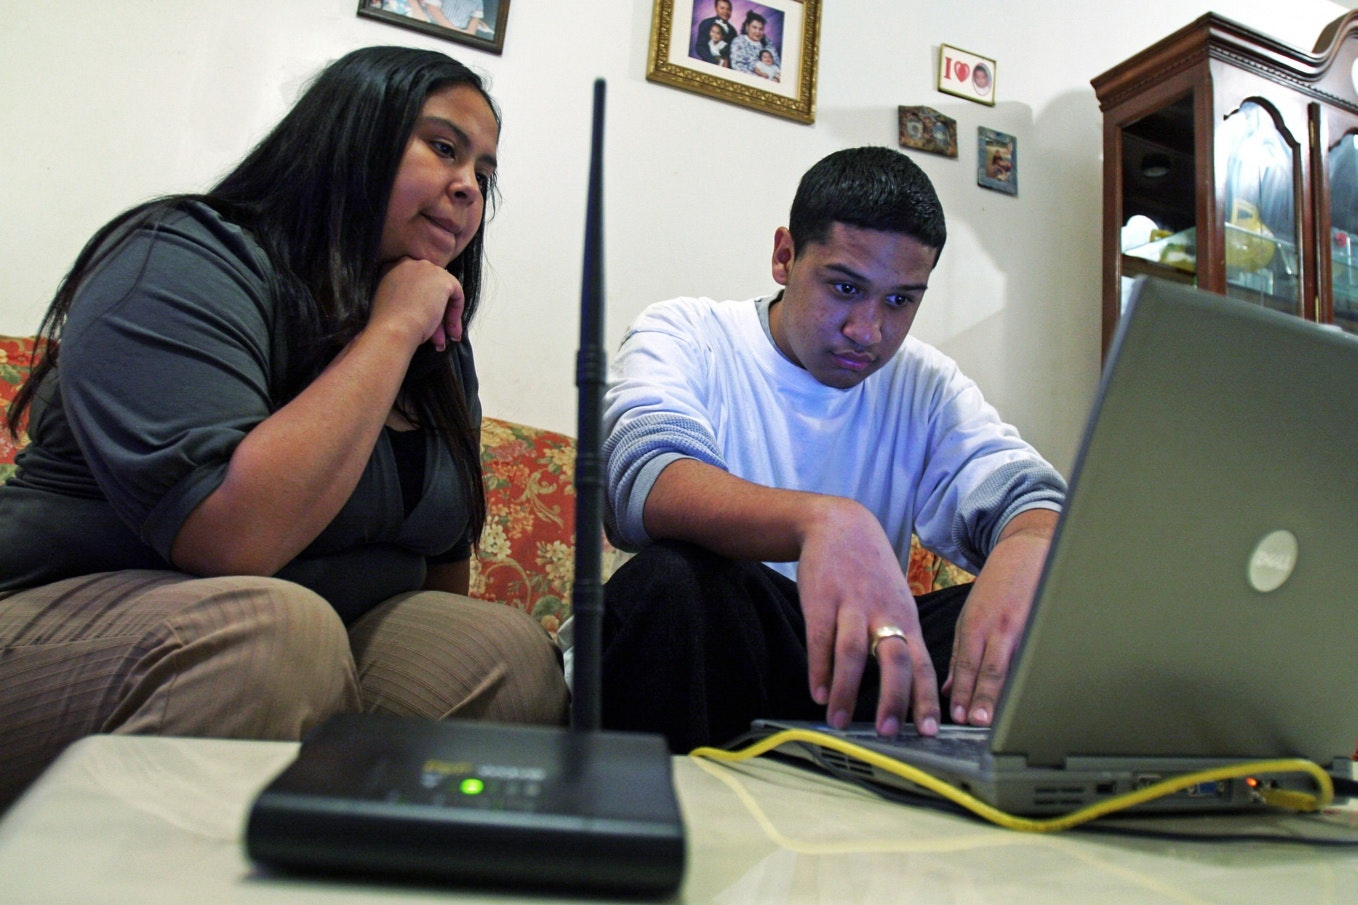 Two people in front of a laptop computer